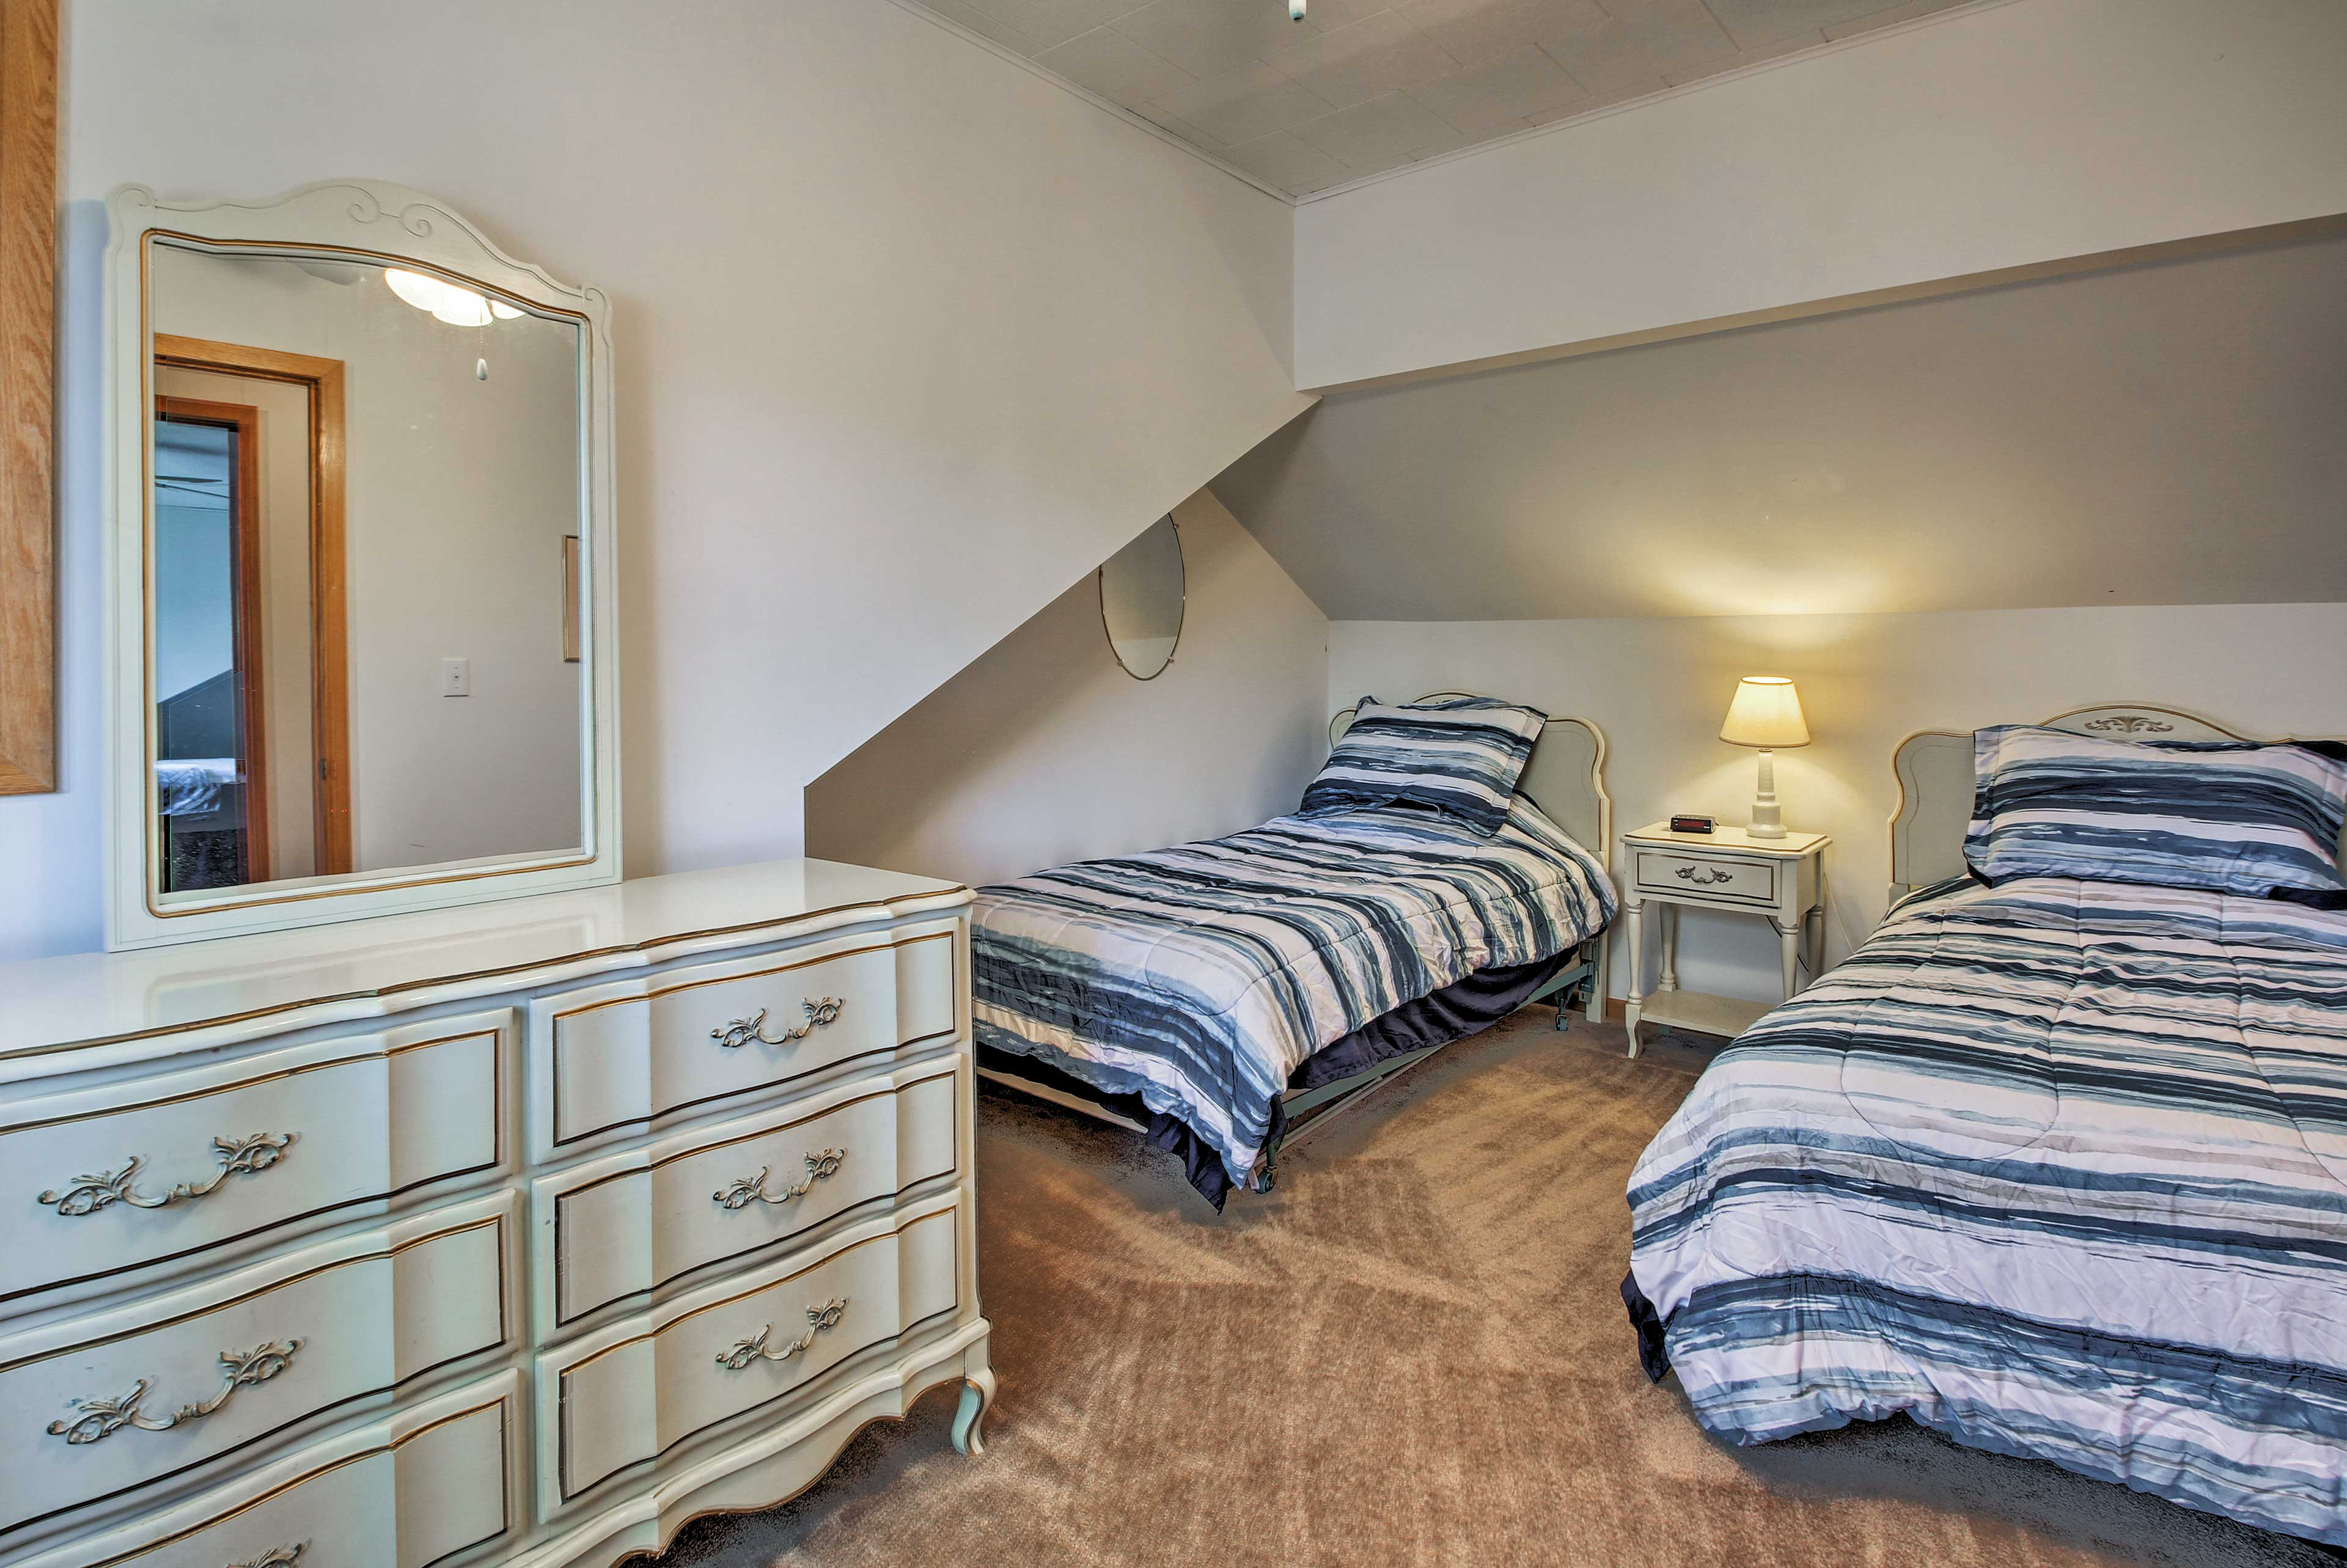 Two can sleep comfortably in 2 cozy twin beds.